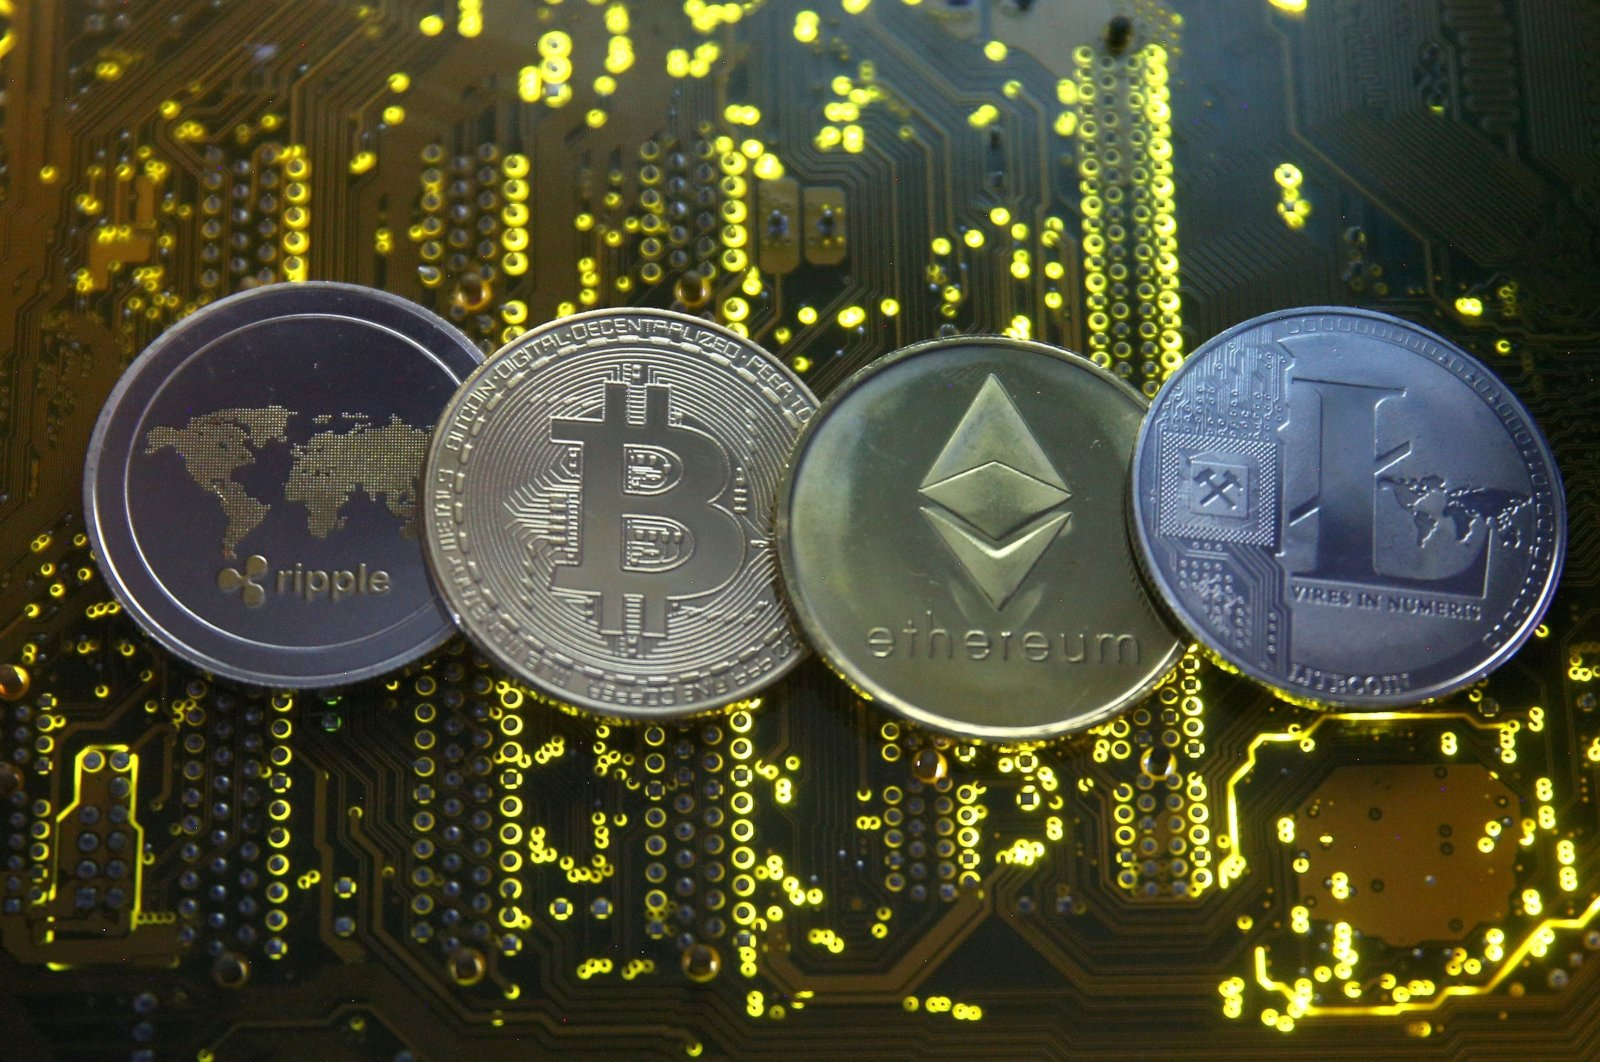 Representations of the Ripple, bitcoin, ethereum and Litecoin virtual currencies are seen on a PC motherboard in this illustration, Feb. 14, 2018. (Reuters Photo)